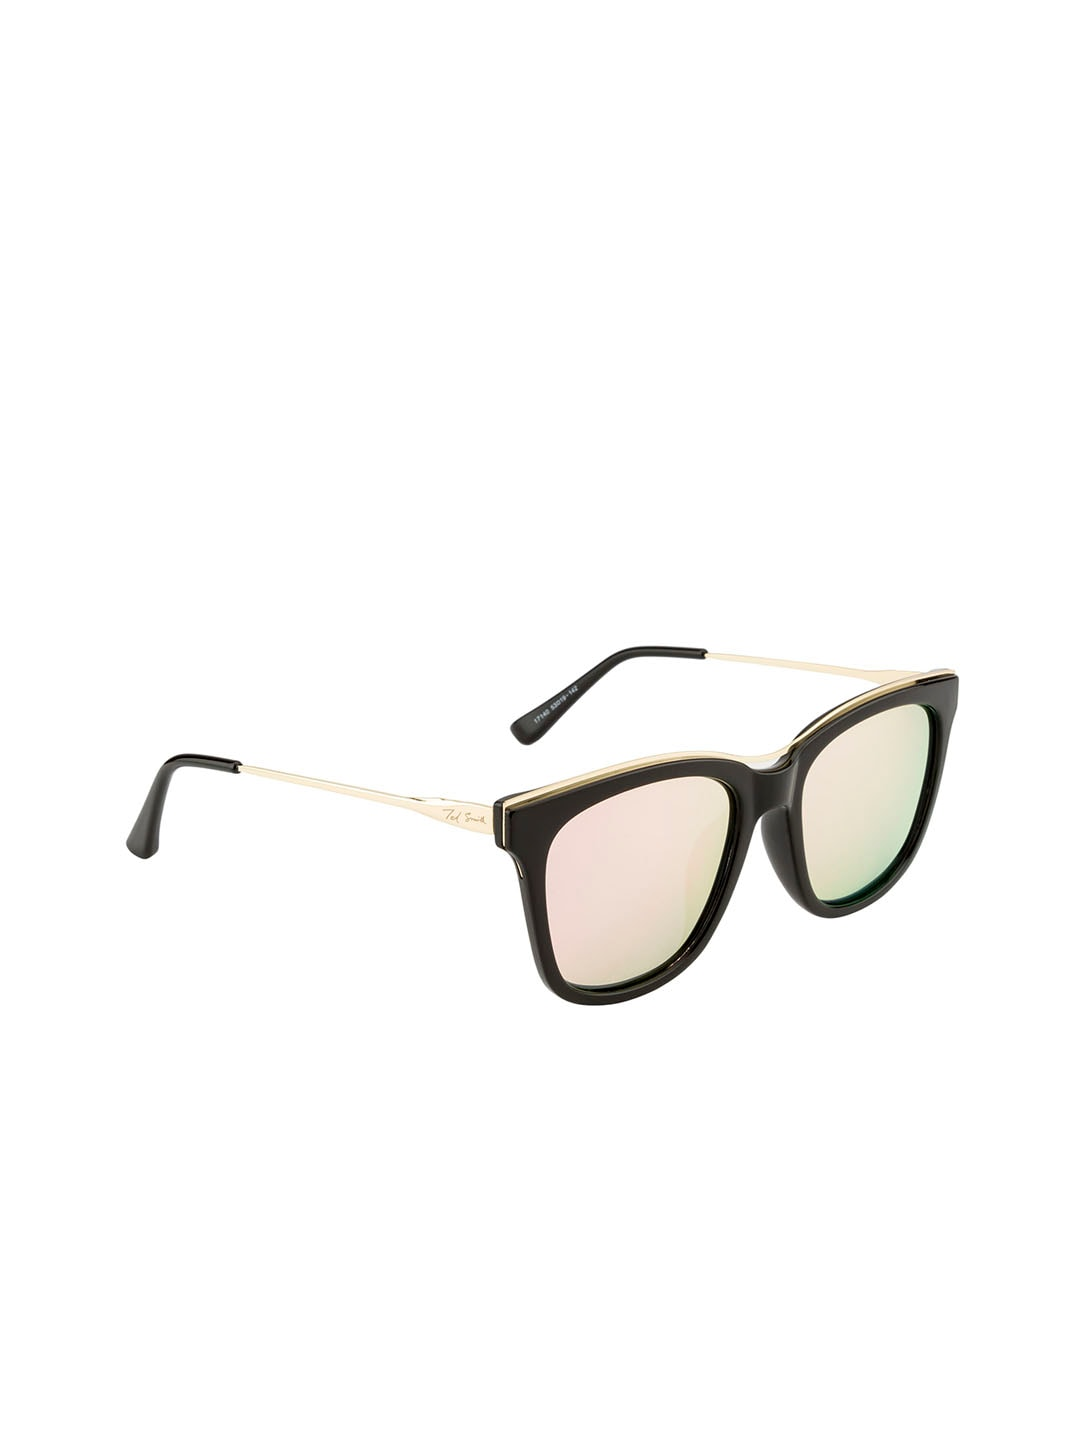 e1ce505580 Ted Smith Sunglasses - Buy Ted Smith Sunglasses online in India